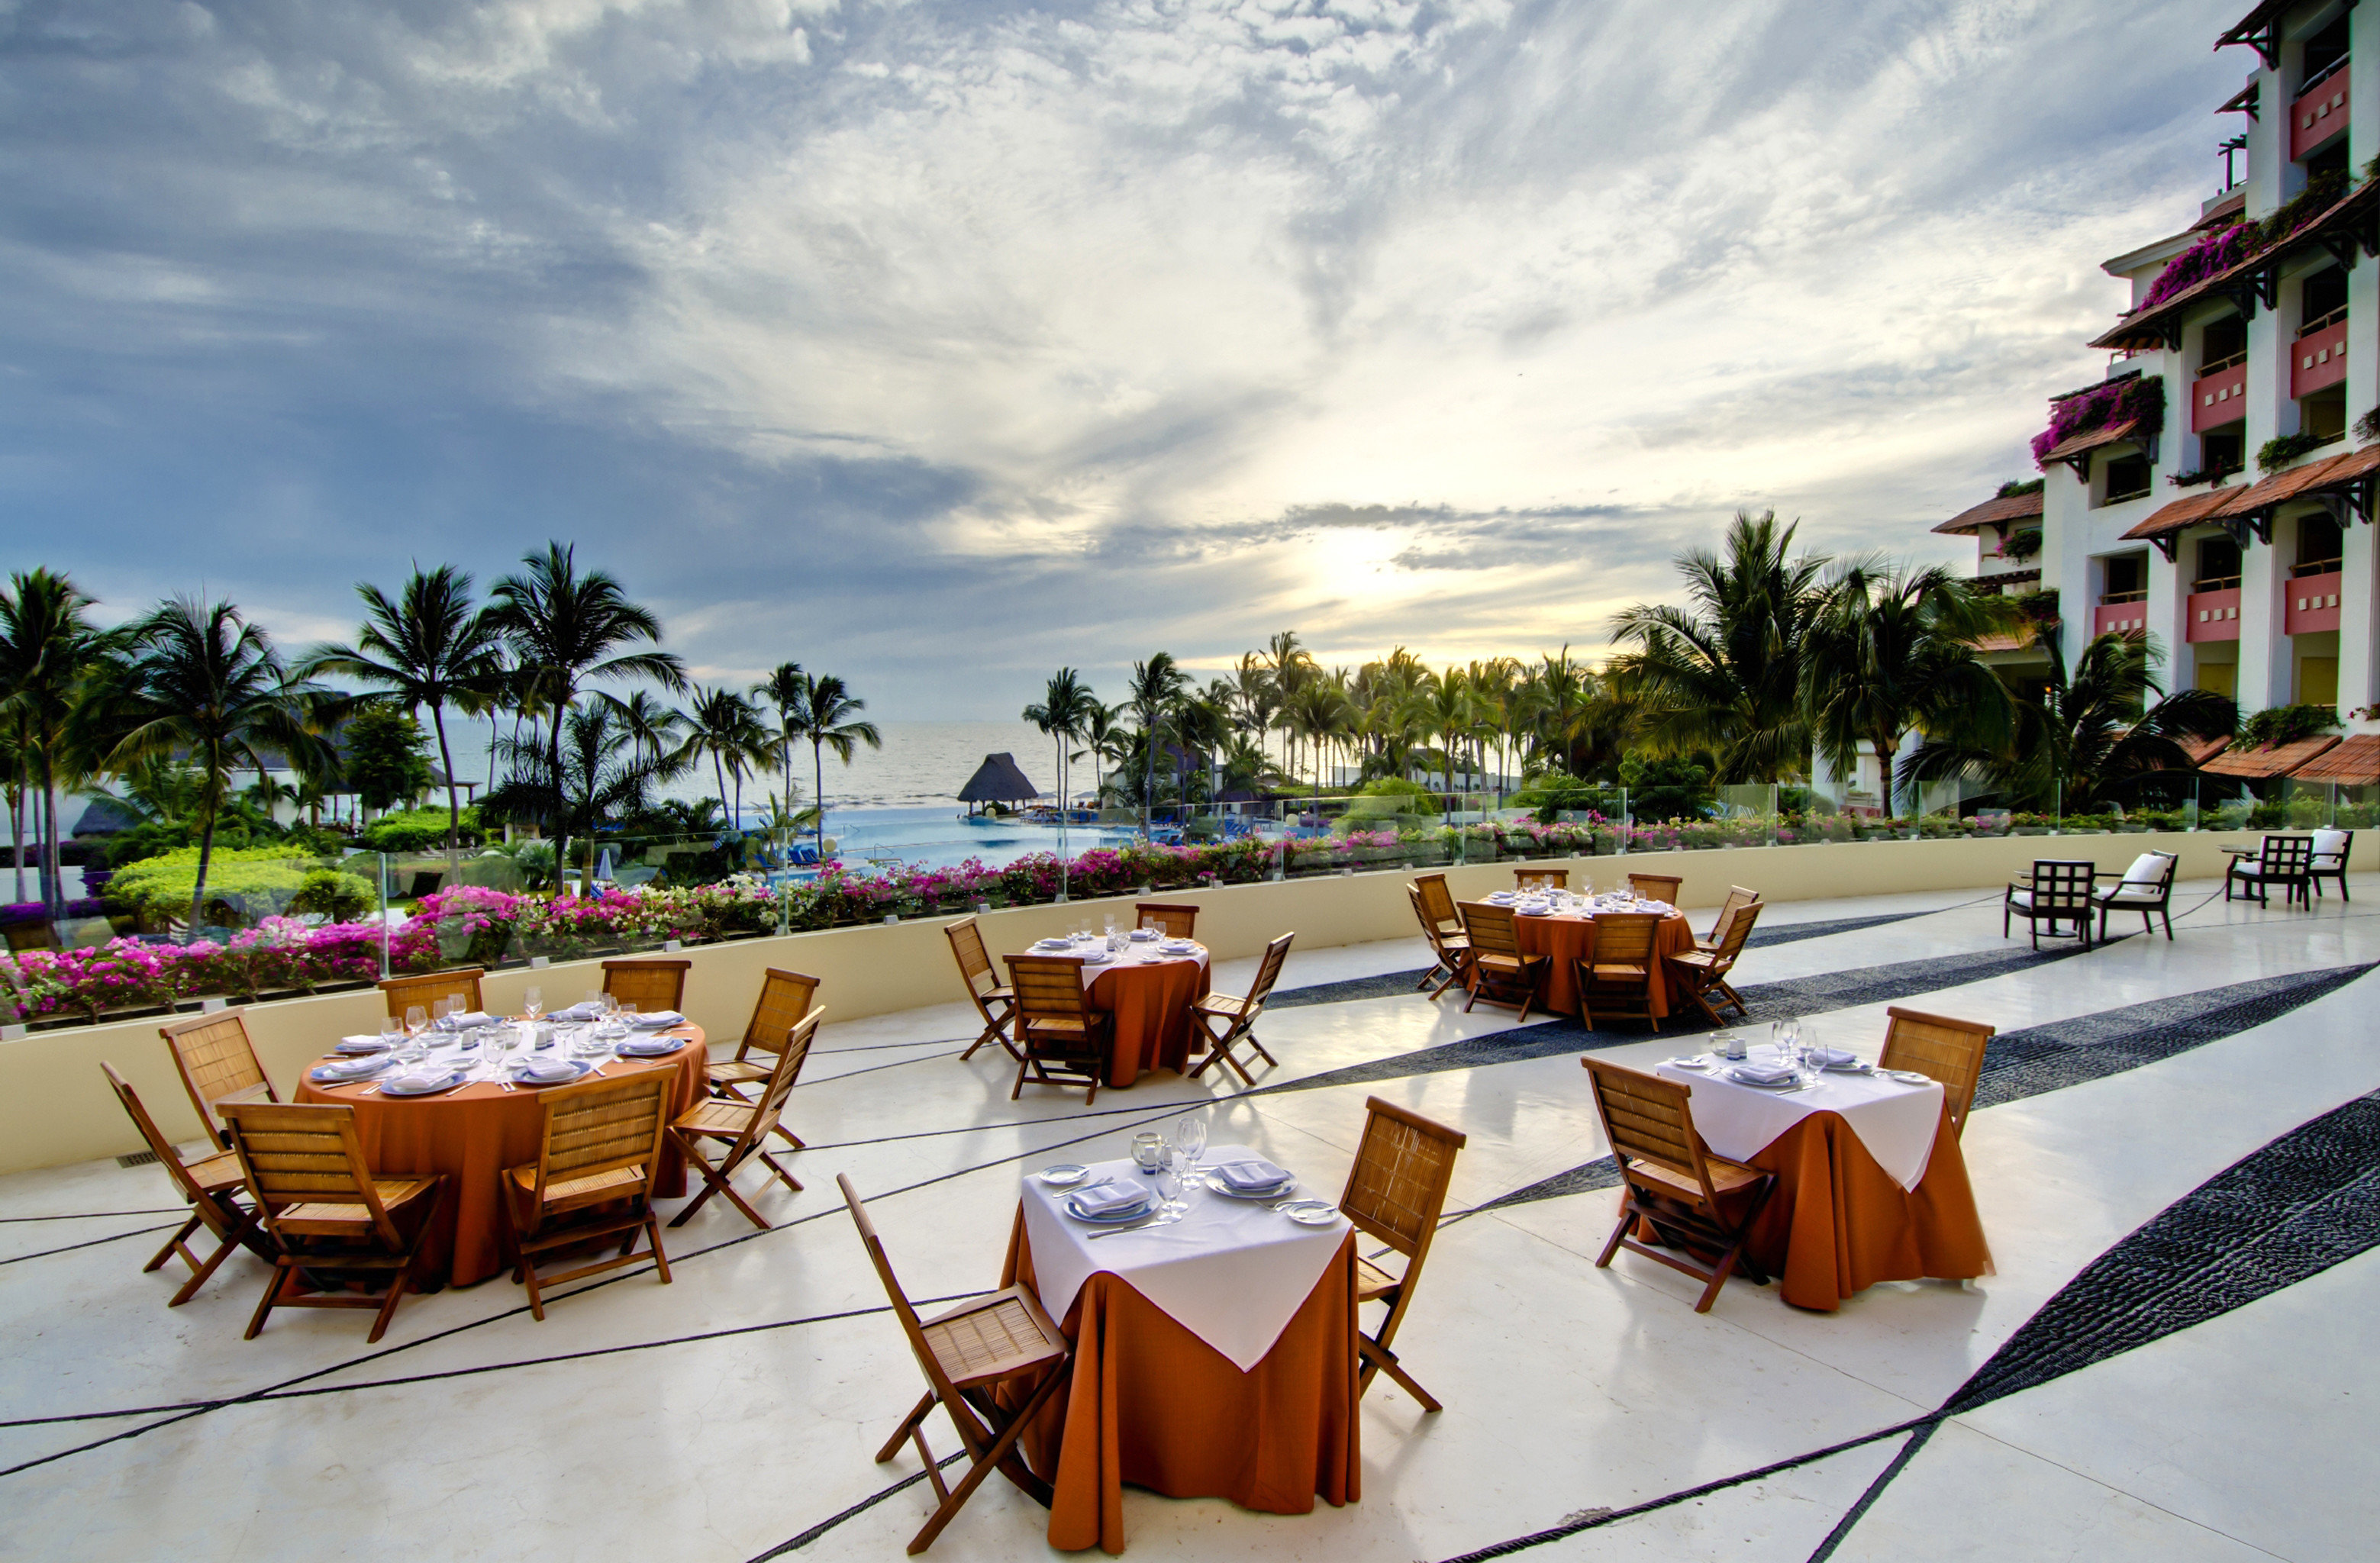 Balcony Beachfront Dining Drink Eat Hotels Outdoors Romance Romantic sky leisure chair Resort Beach restaurant